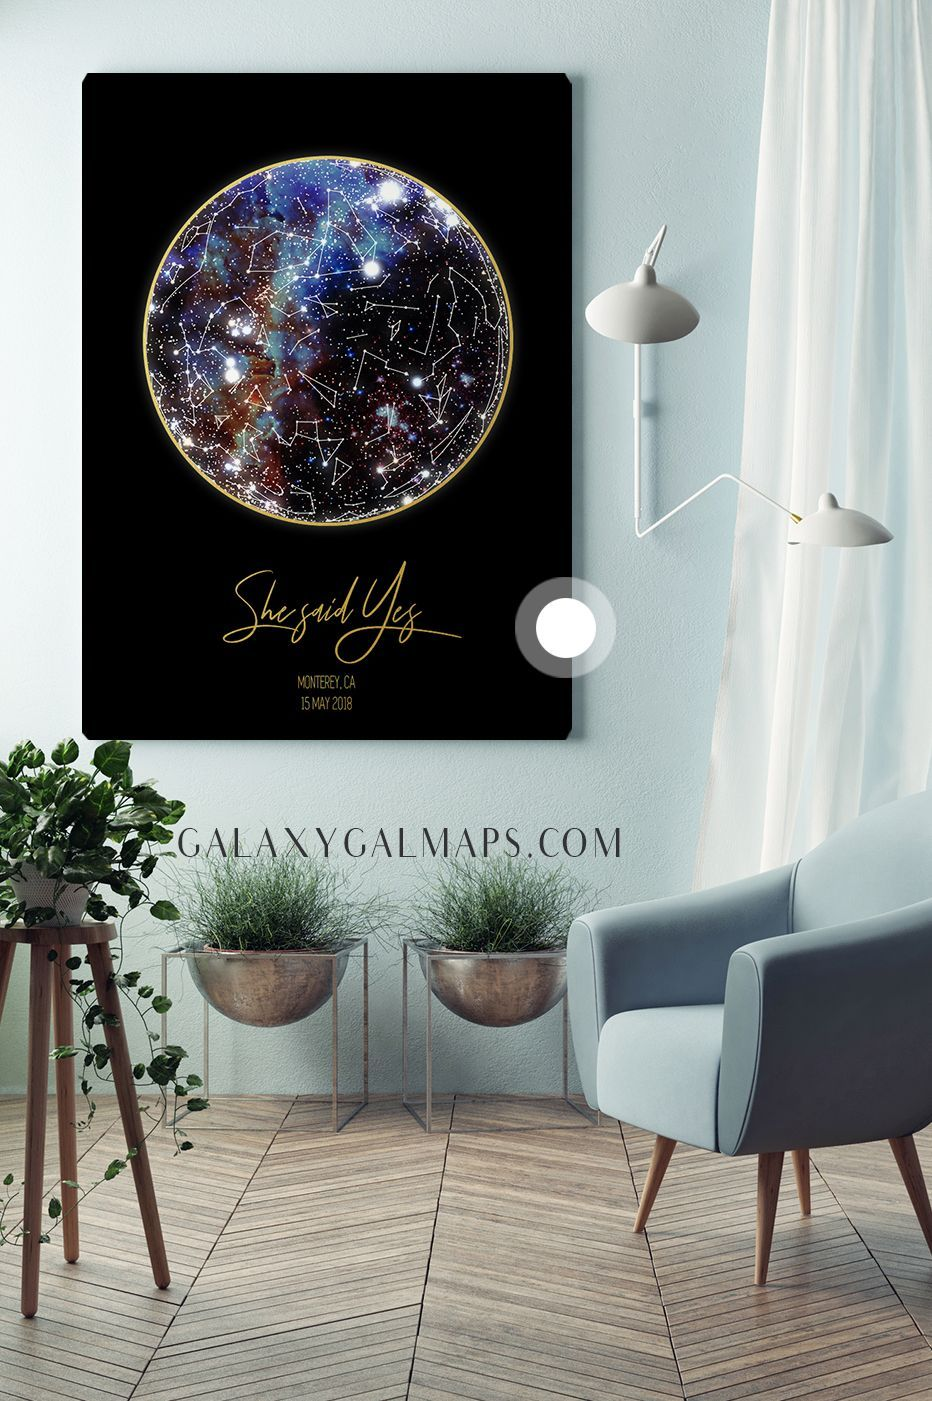 Custom star map world map guest book canvas wedding gift for bride custom star map world map guest book canvas wedding gift for bride and groom travel gumiabroncs Images